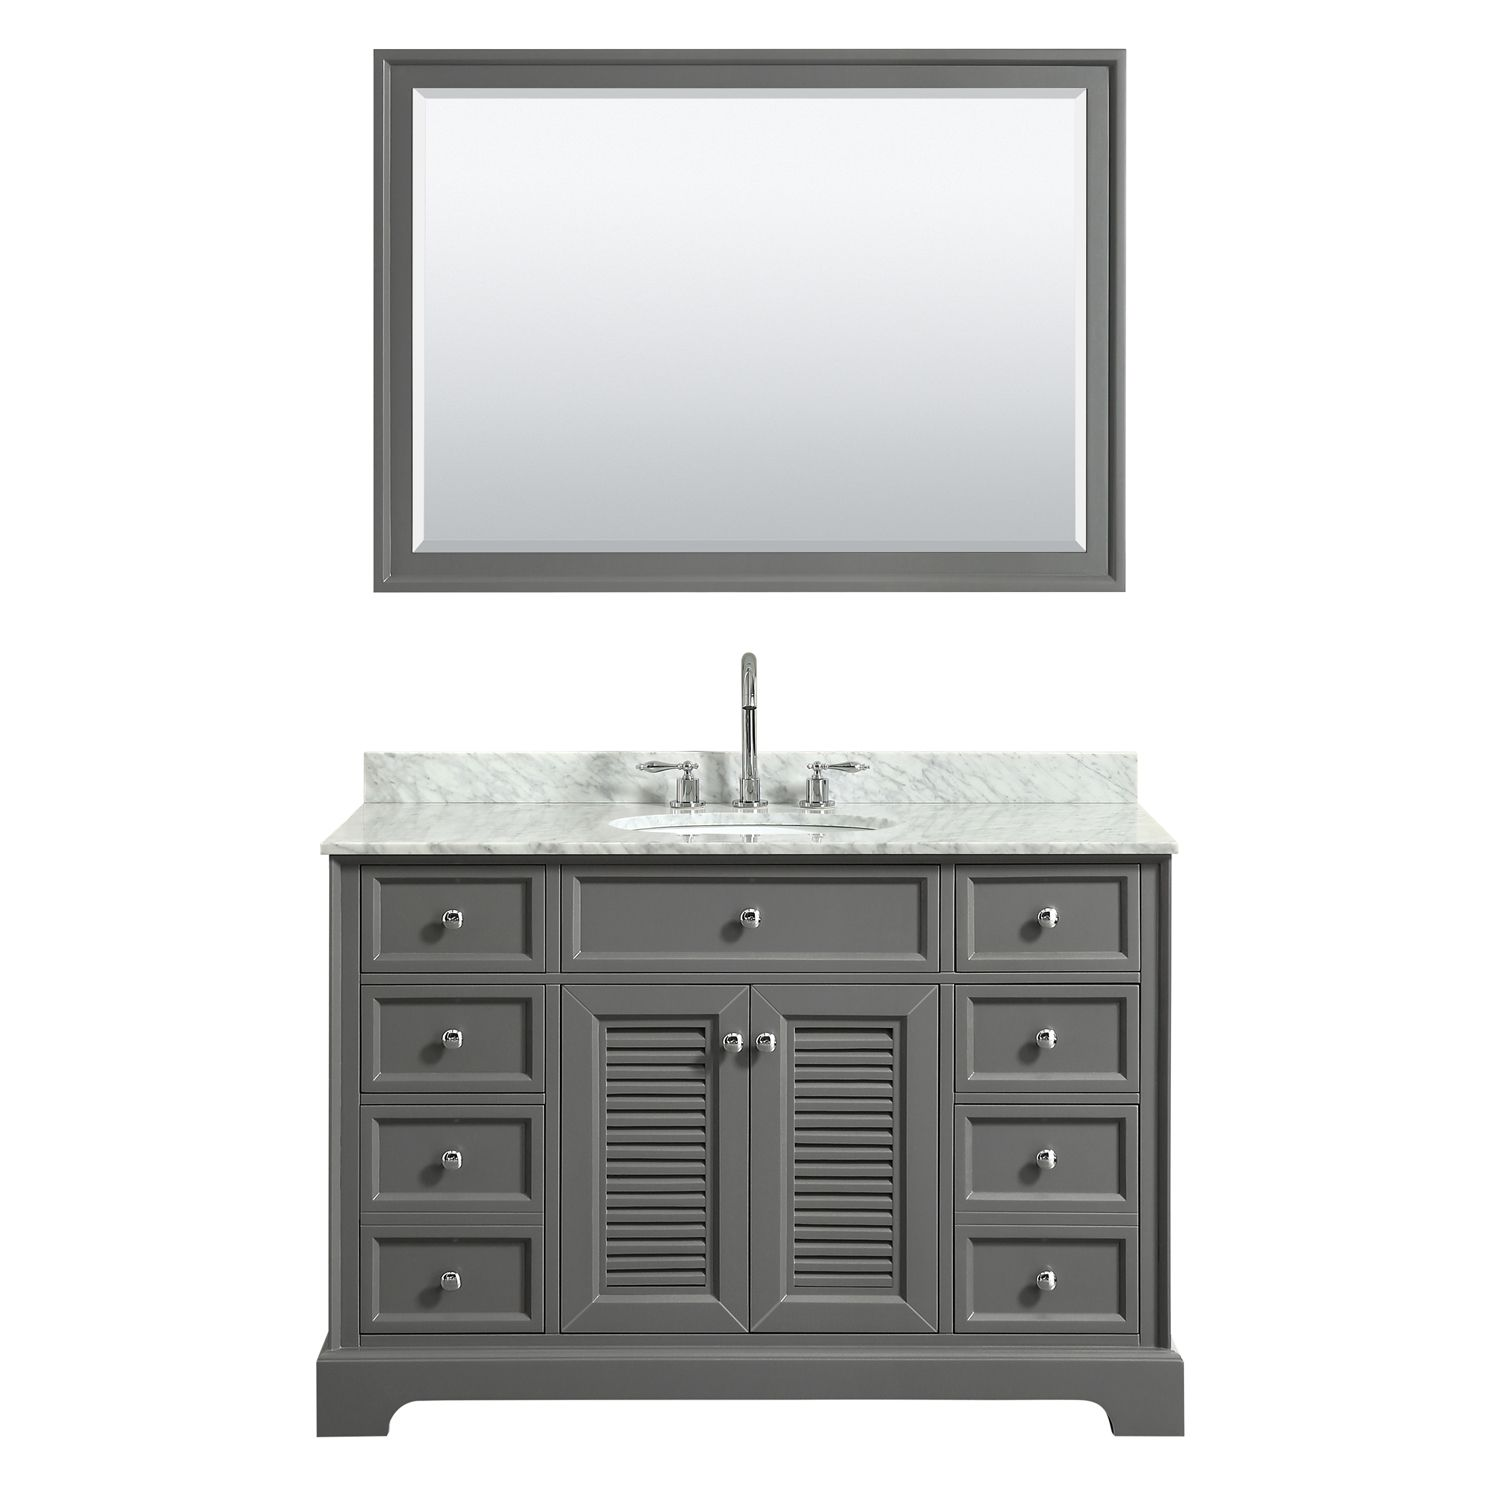 103 Inch Transitional Double Bathroom Vanity White Finish Marble Top Single Bathroom Vanity Vanity Set With Mirror White Vanity Bathroom